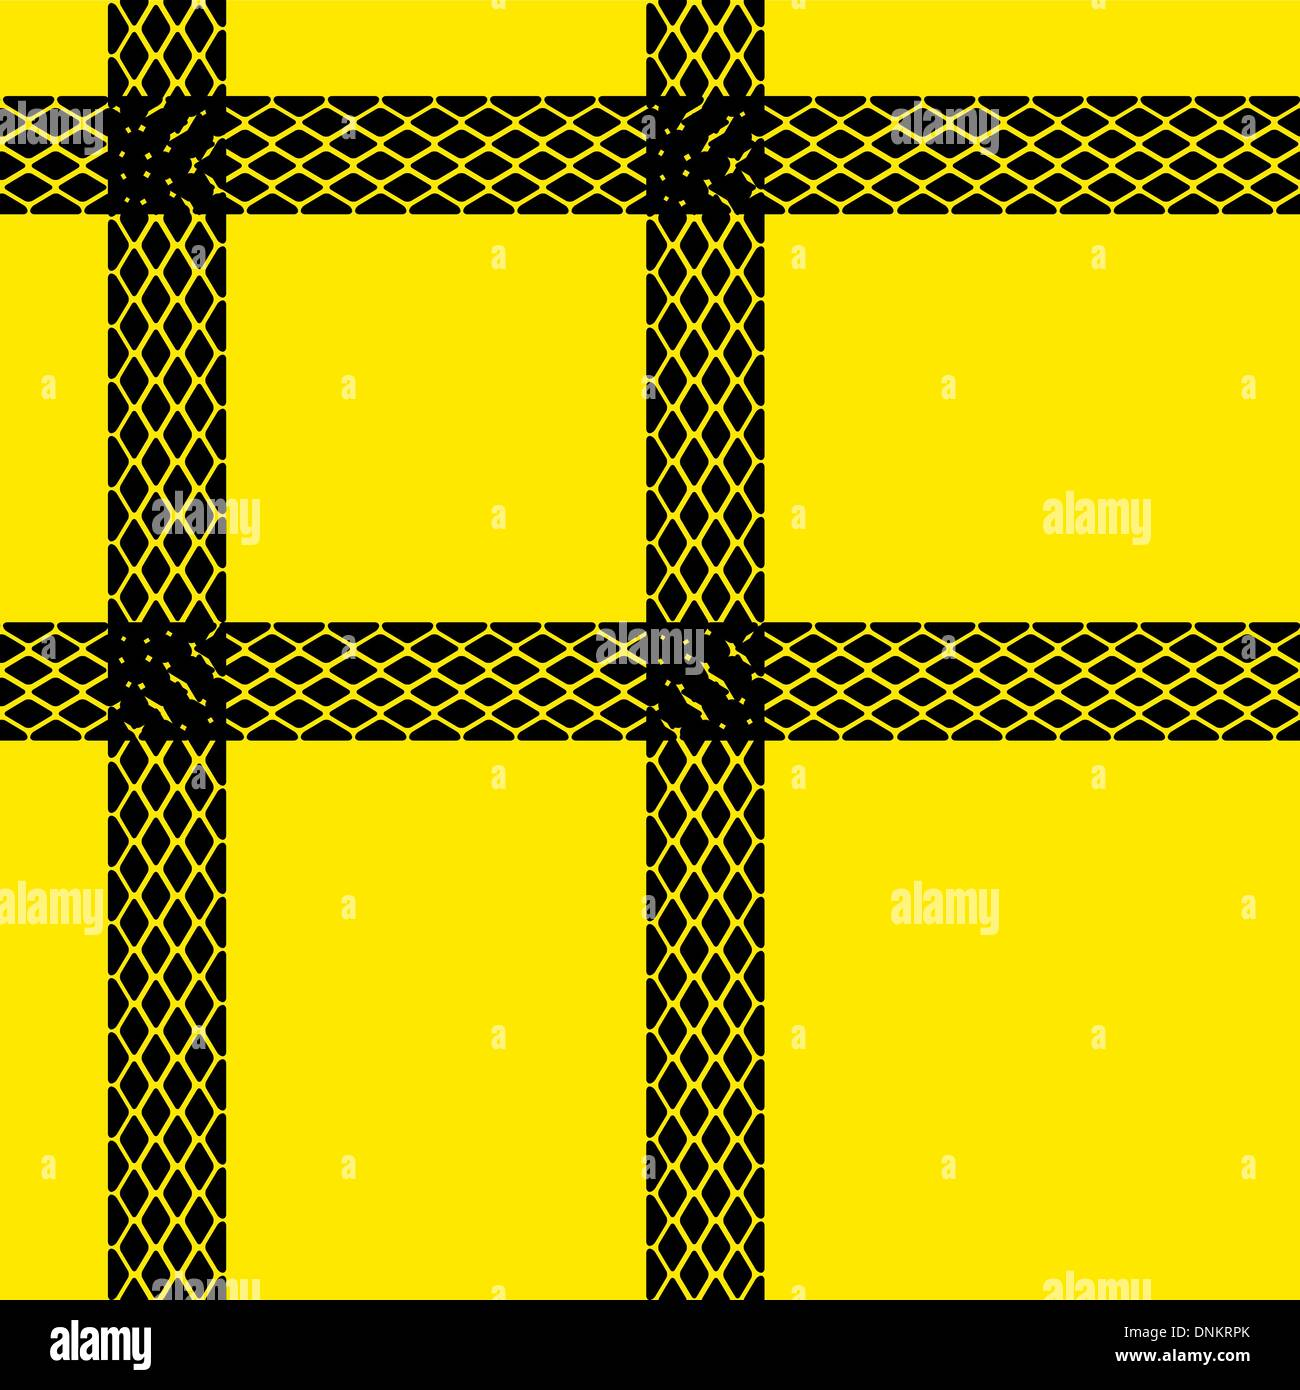 Seamless wallpaper tire tracks pattern illustration vector background - Stock Image